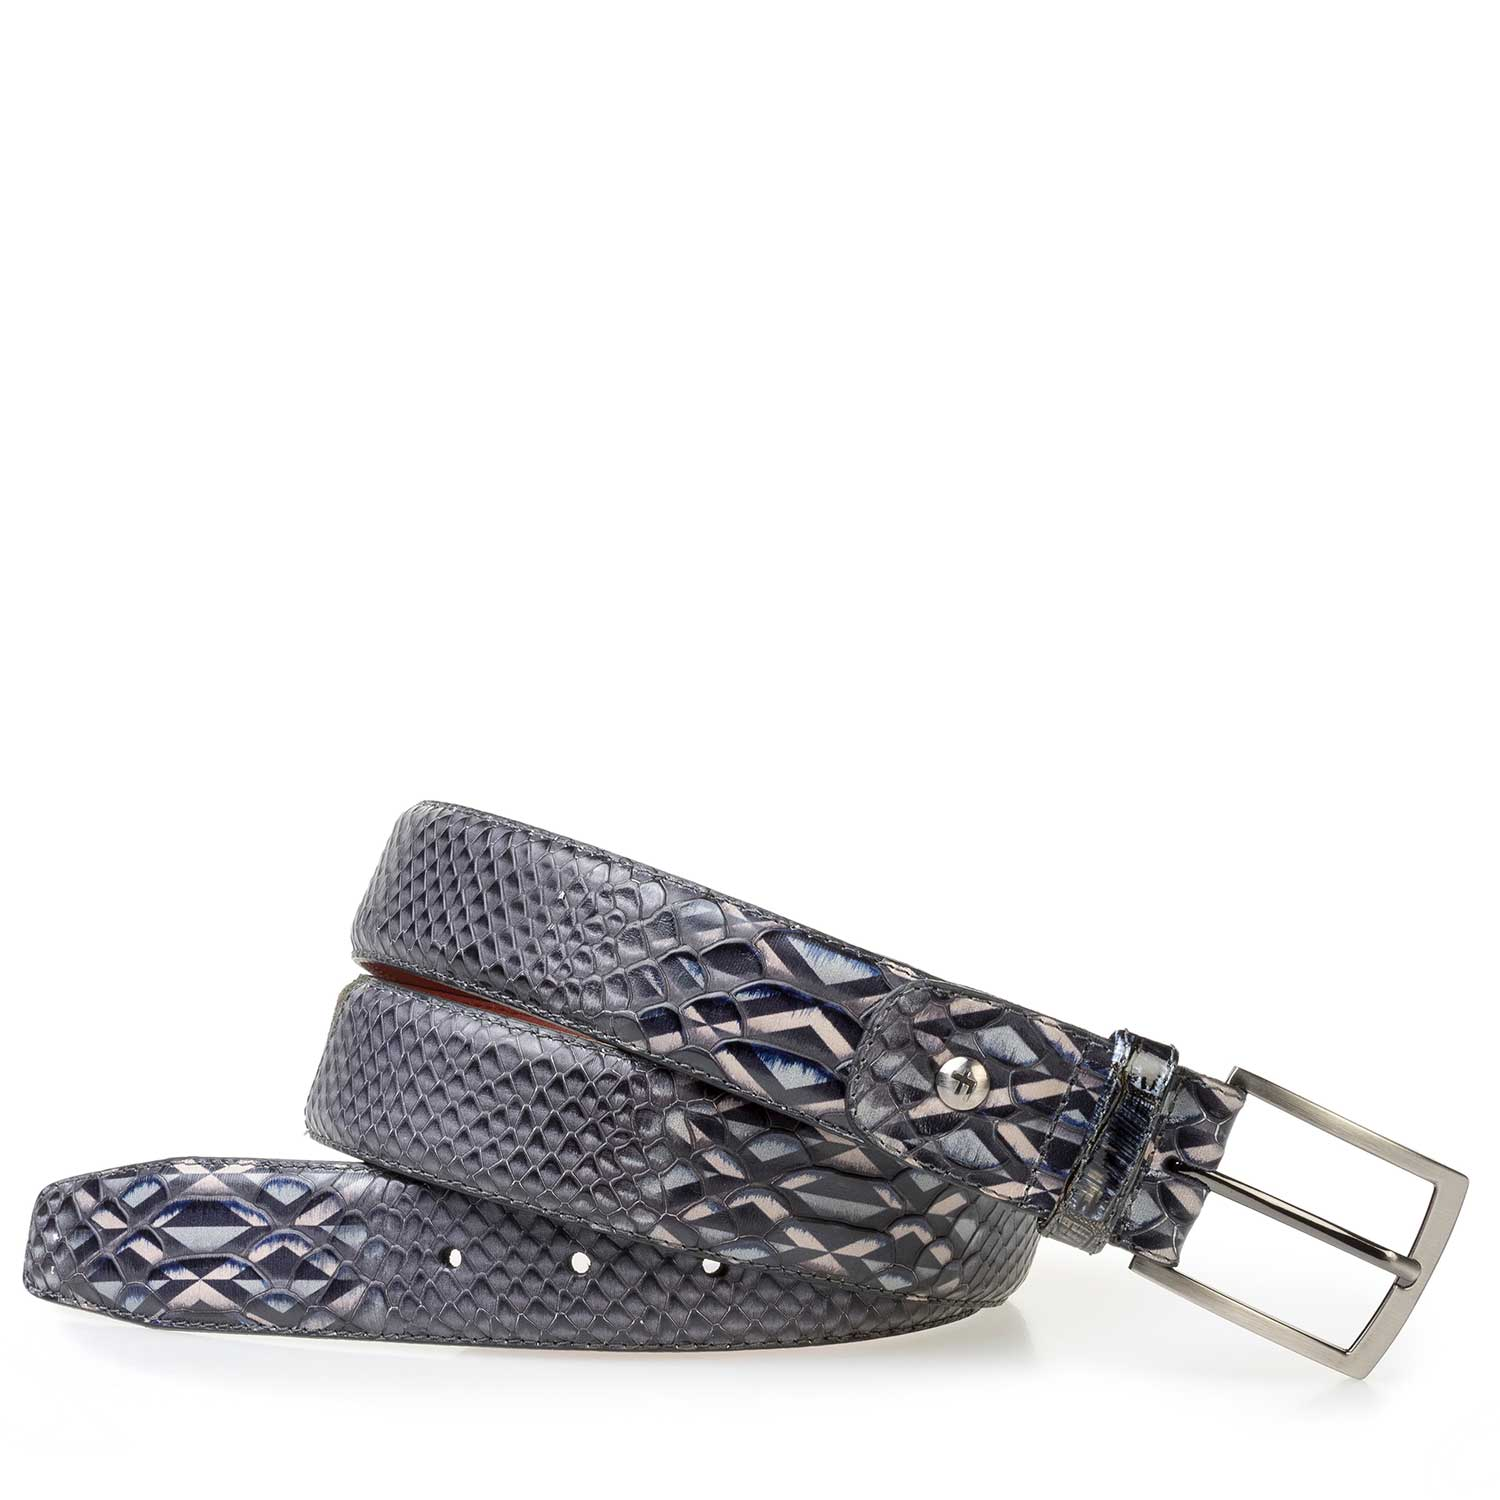 75188/25 - Grey calf leather belt with a snake print